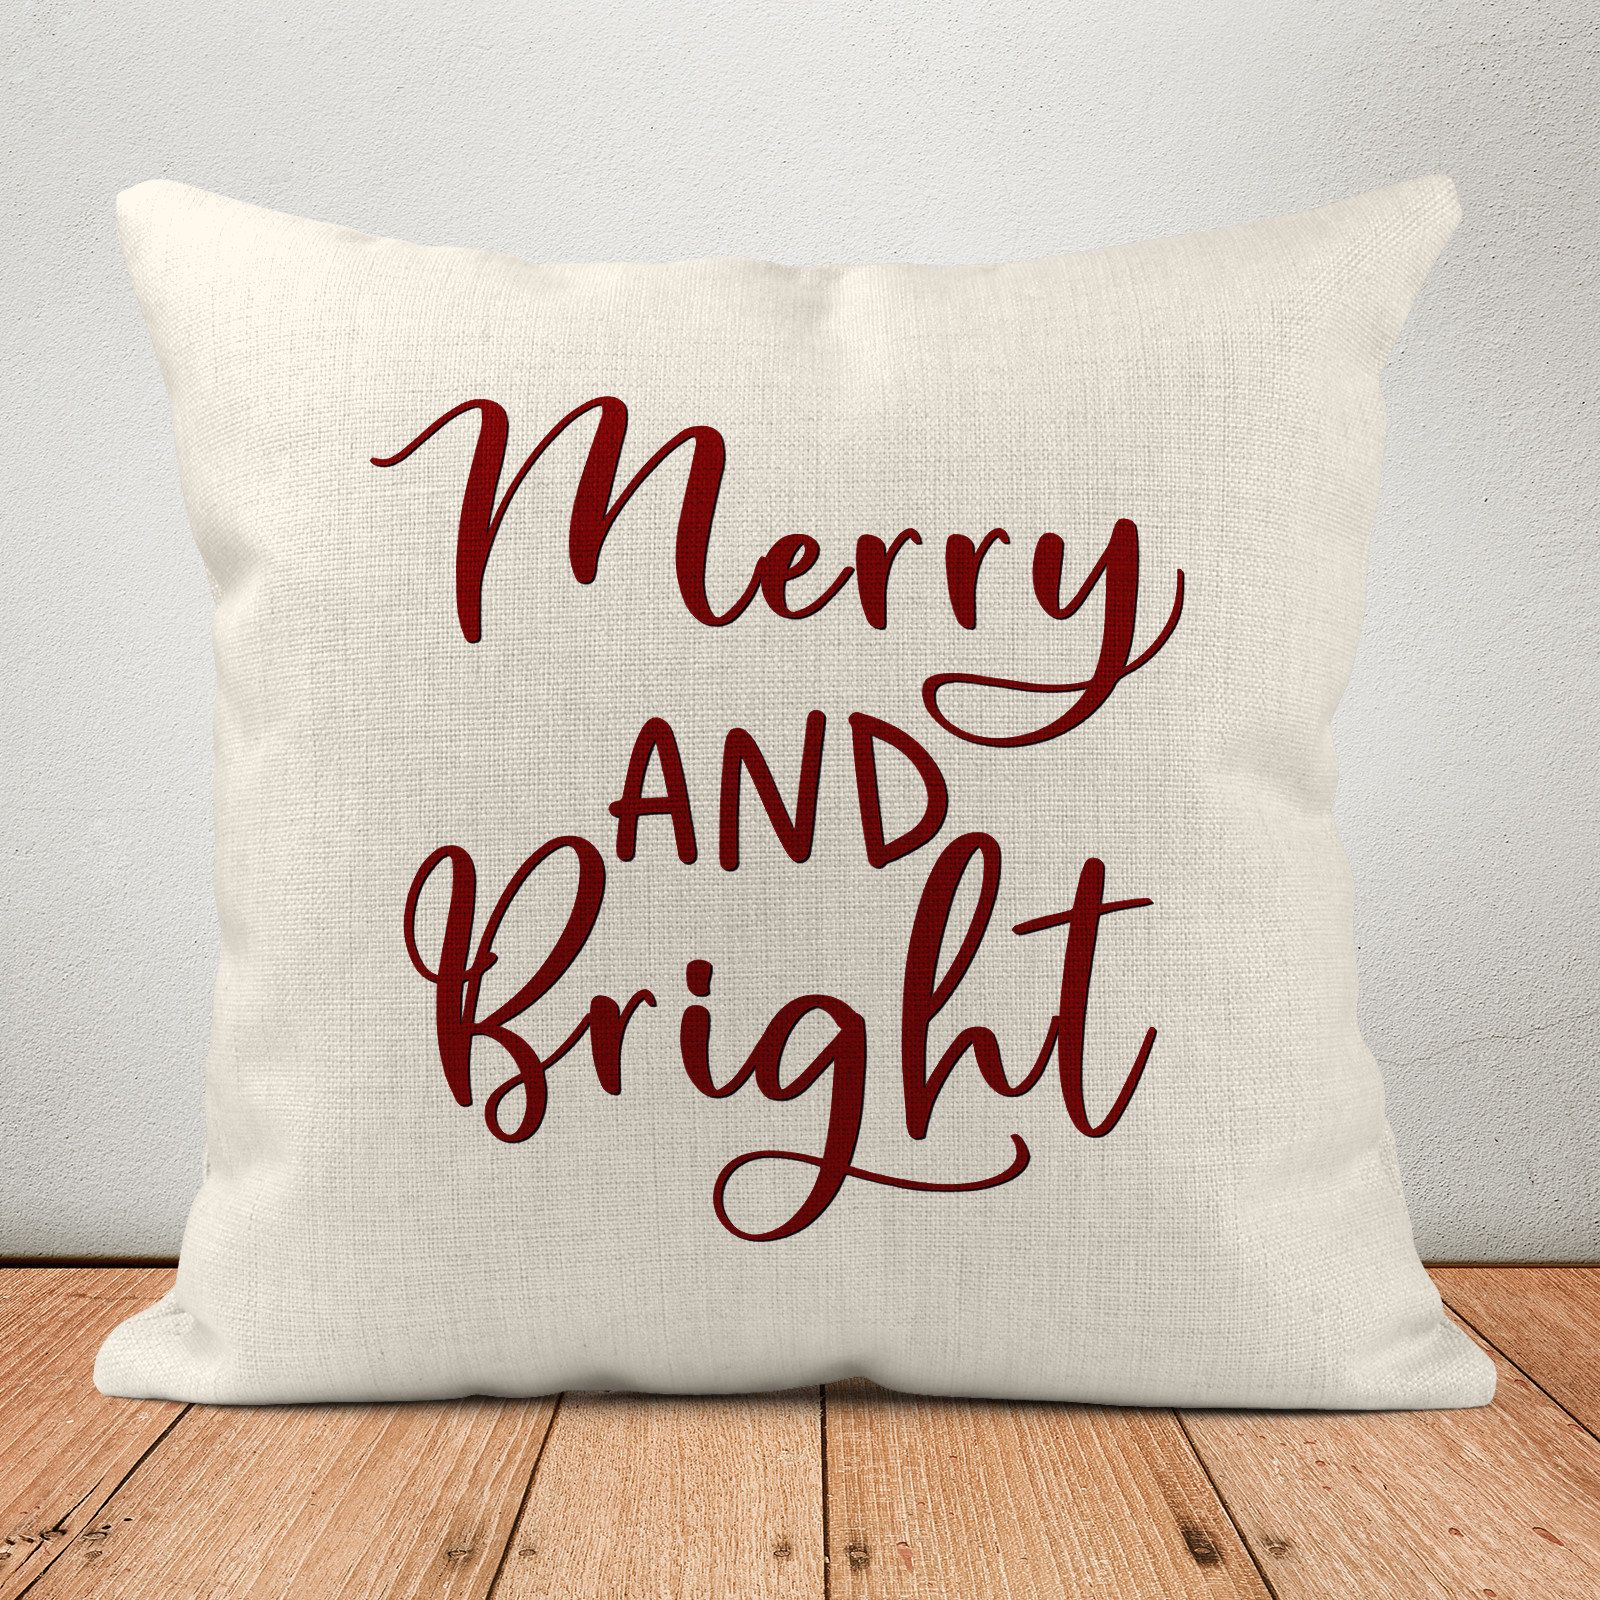 Merry And Bright, Gift for Her, Christmas Pillow, Christmas Gift, Custom Pillow, Pillow Cover, Home Decor,Gift for Wife,Gift for Couple,PI35